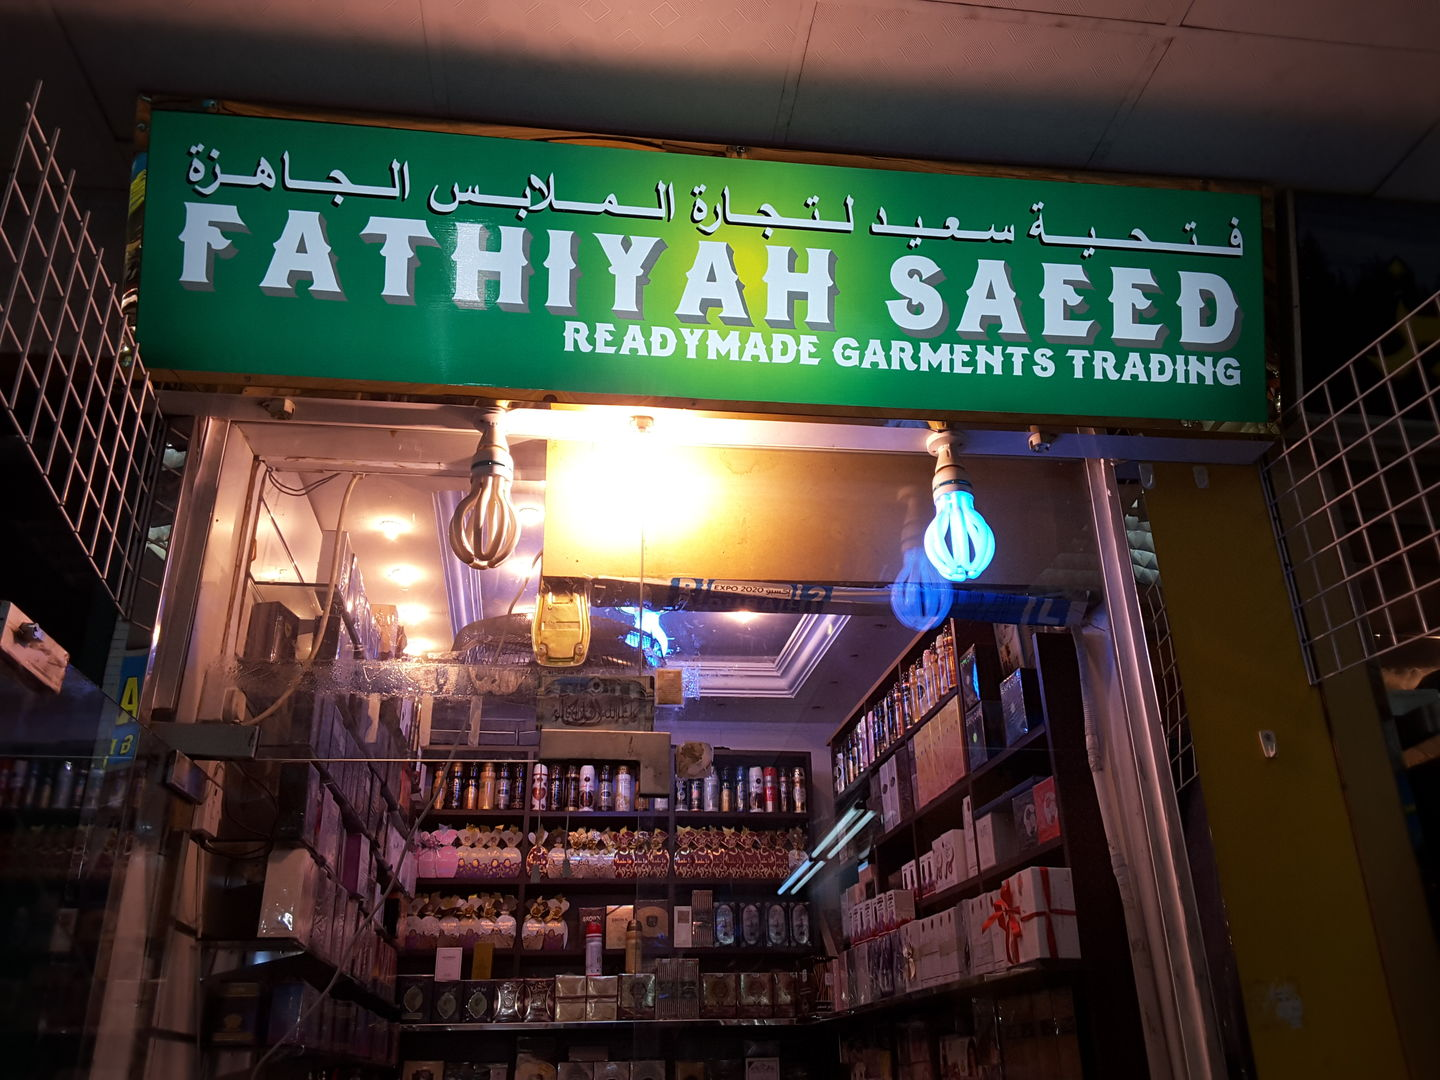 HiDubai-business-fathiyah-saeed-readymade-garments-trading-shopping-beauty-cosmetics-stores-naif-dubai-2